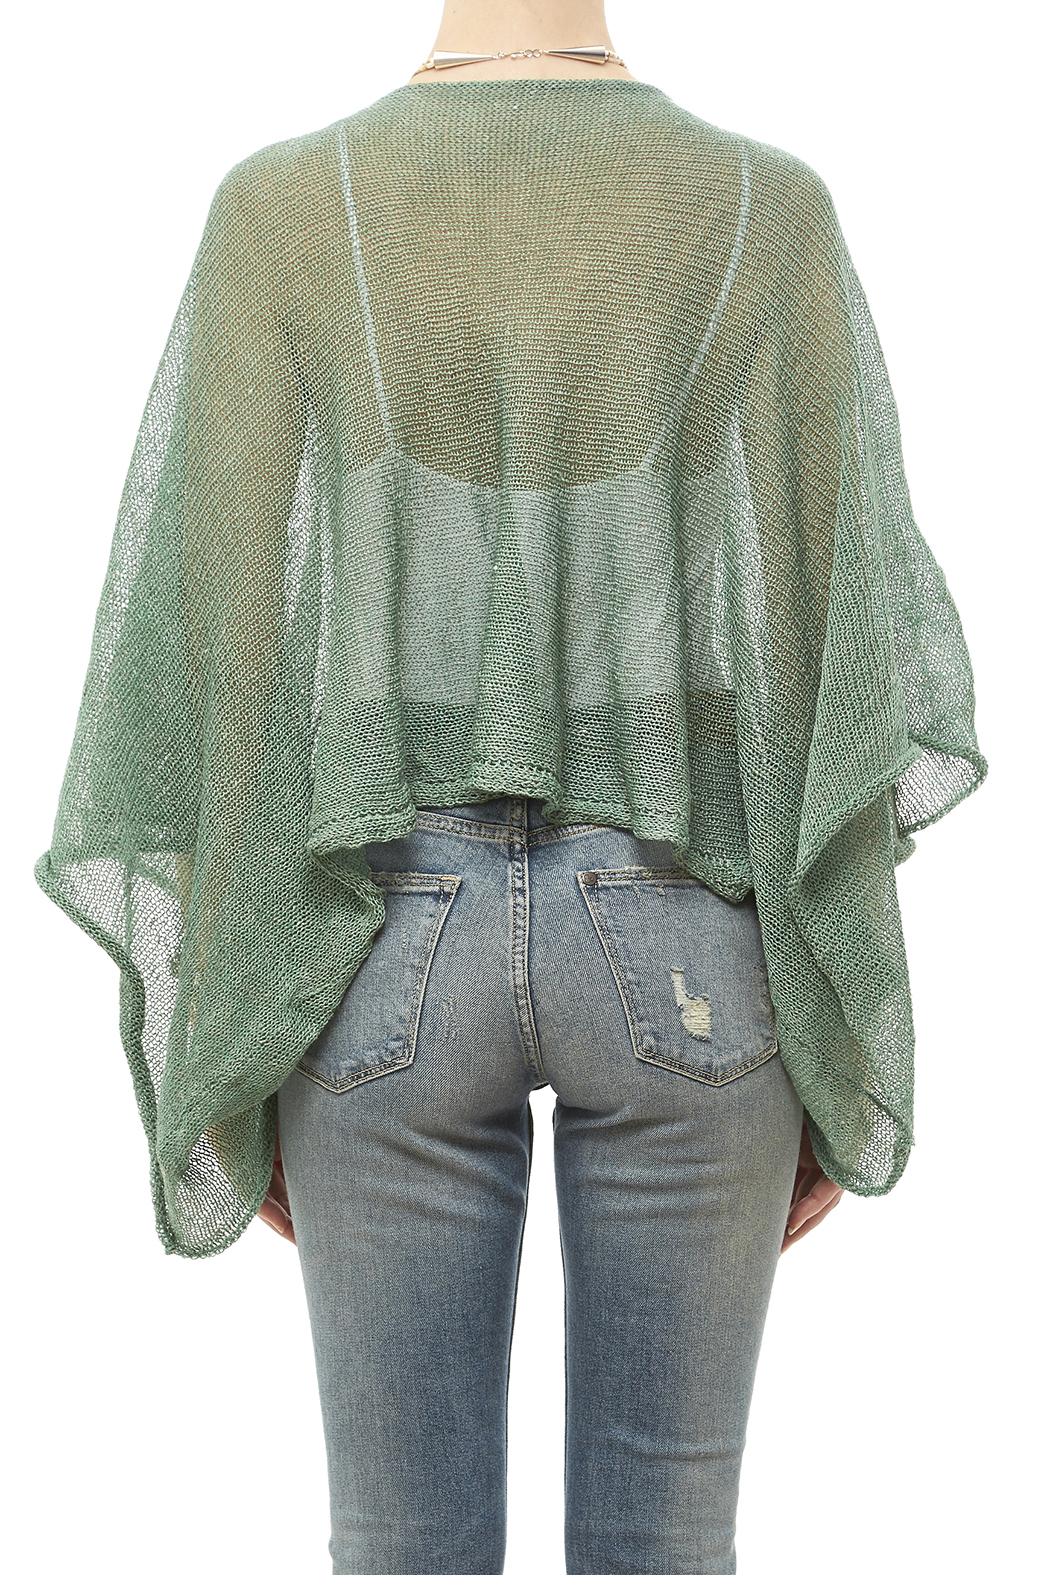 DC KNITS Green Linen Blend Sweater - Back Cropped Image